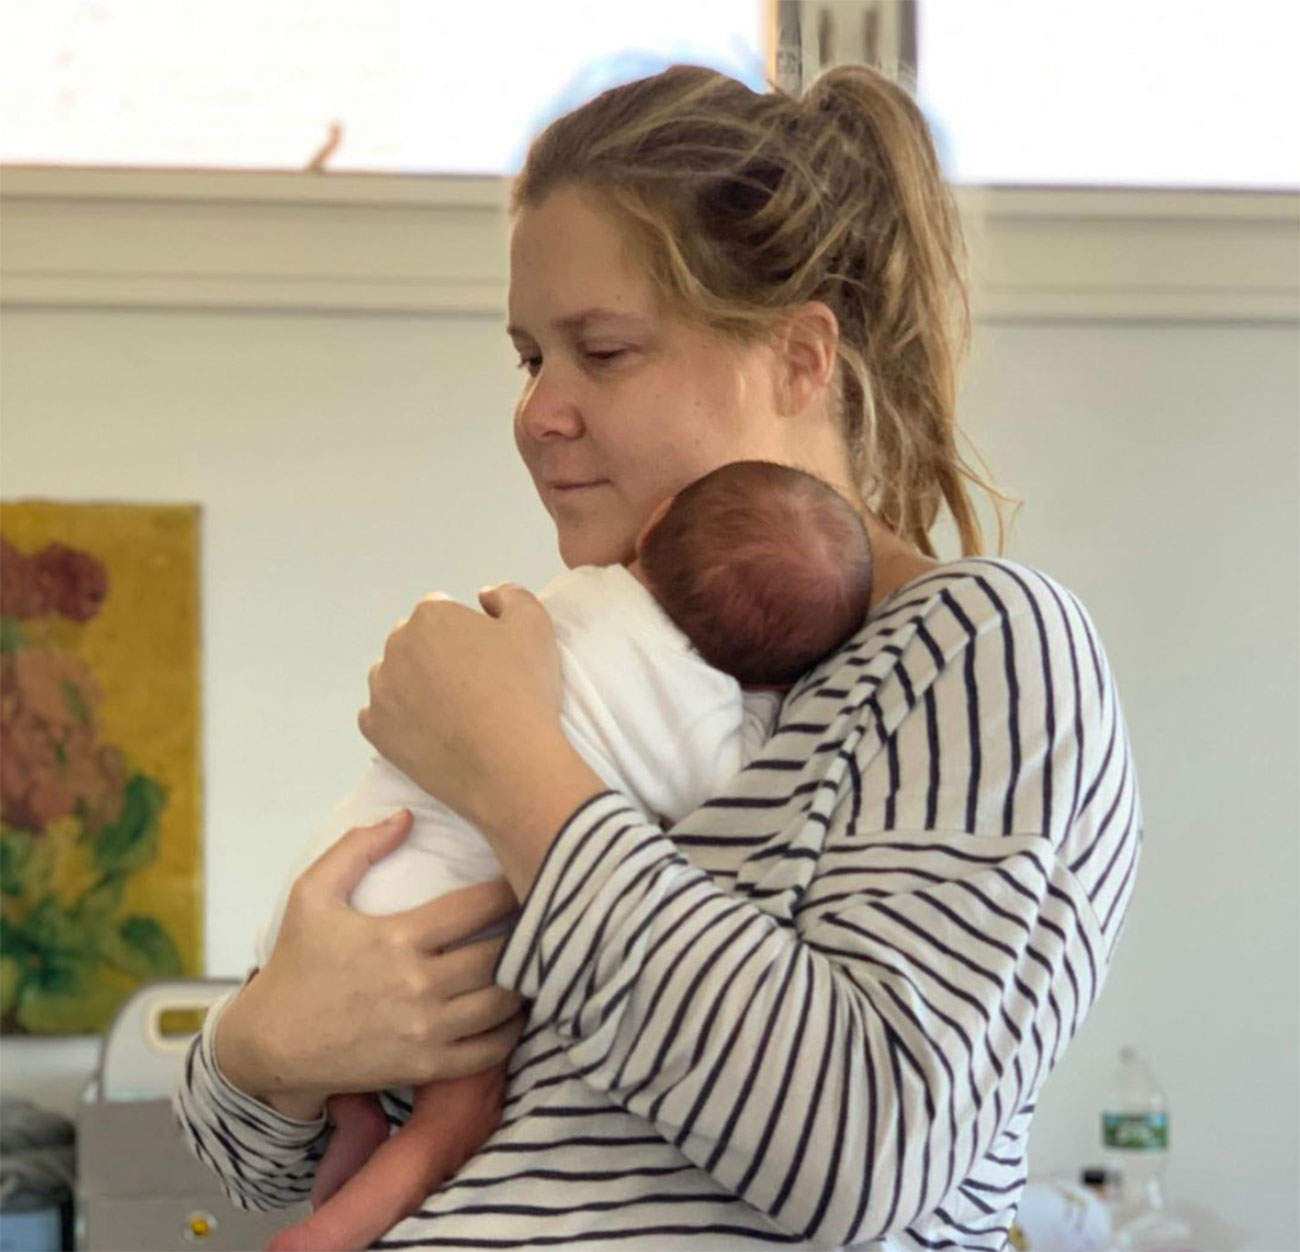 Amy Schumer Posts Photo of Herself Pumping After Birth